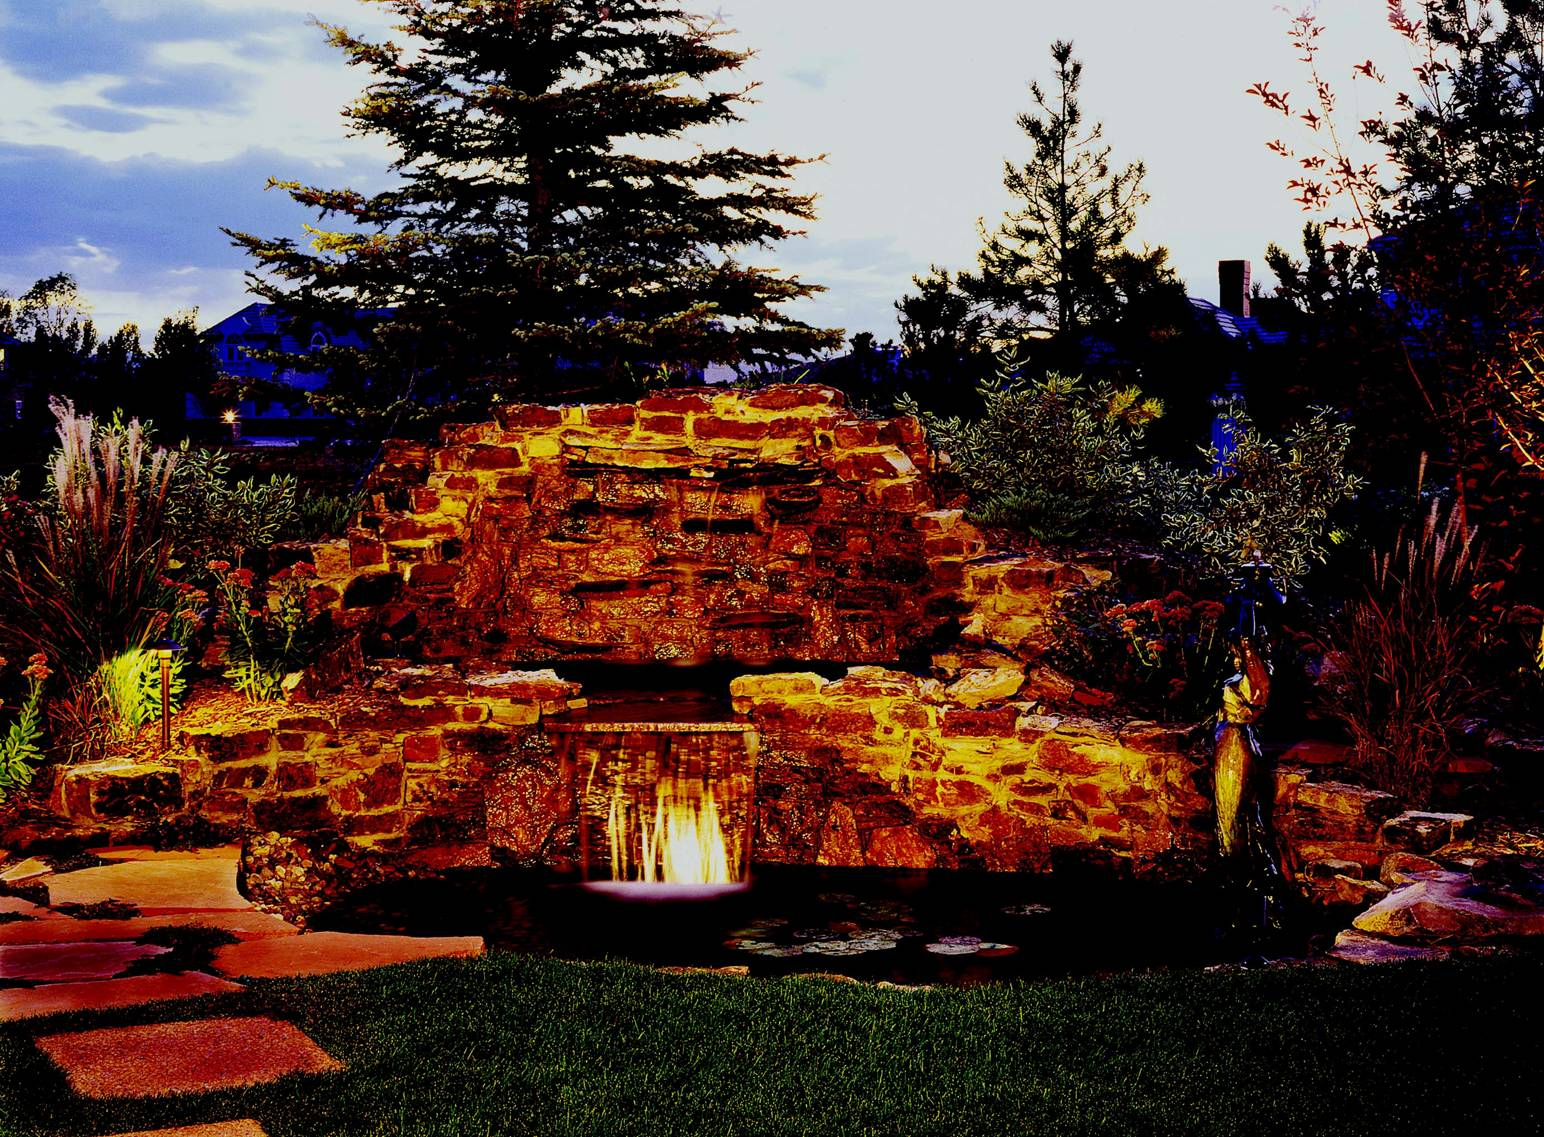 Buell Mansion/Cherry Hills Village backyard oasis. The only thing better than a relaxing water feature in the daytime, is a beautifully- illuminated water feature after dark. These homeowners wanted to be able to enjoy this focal point of their back yard 365 days a year.